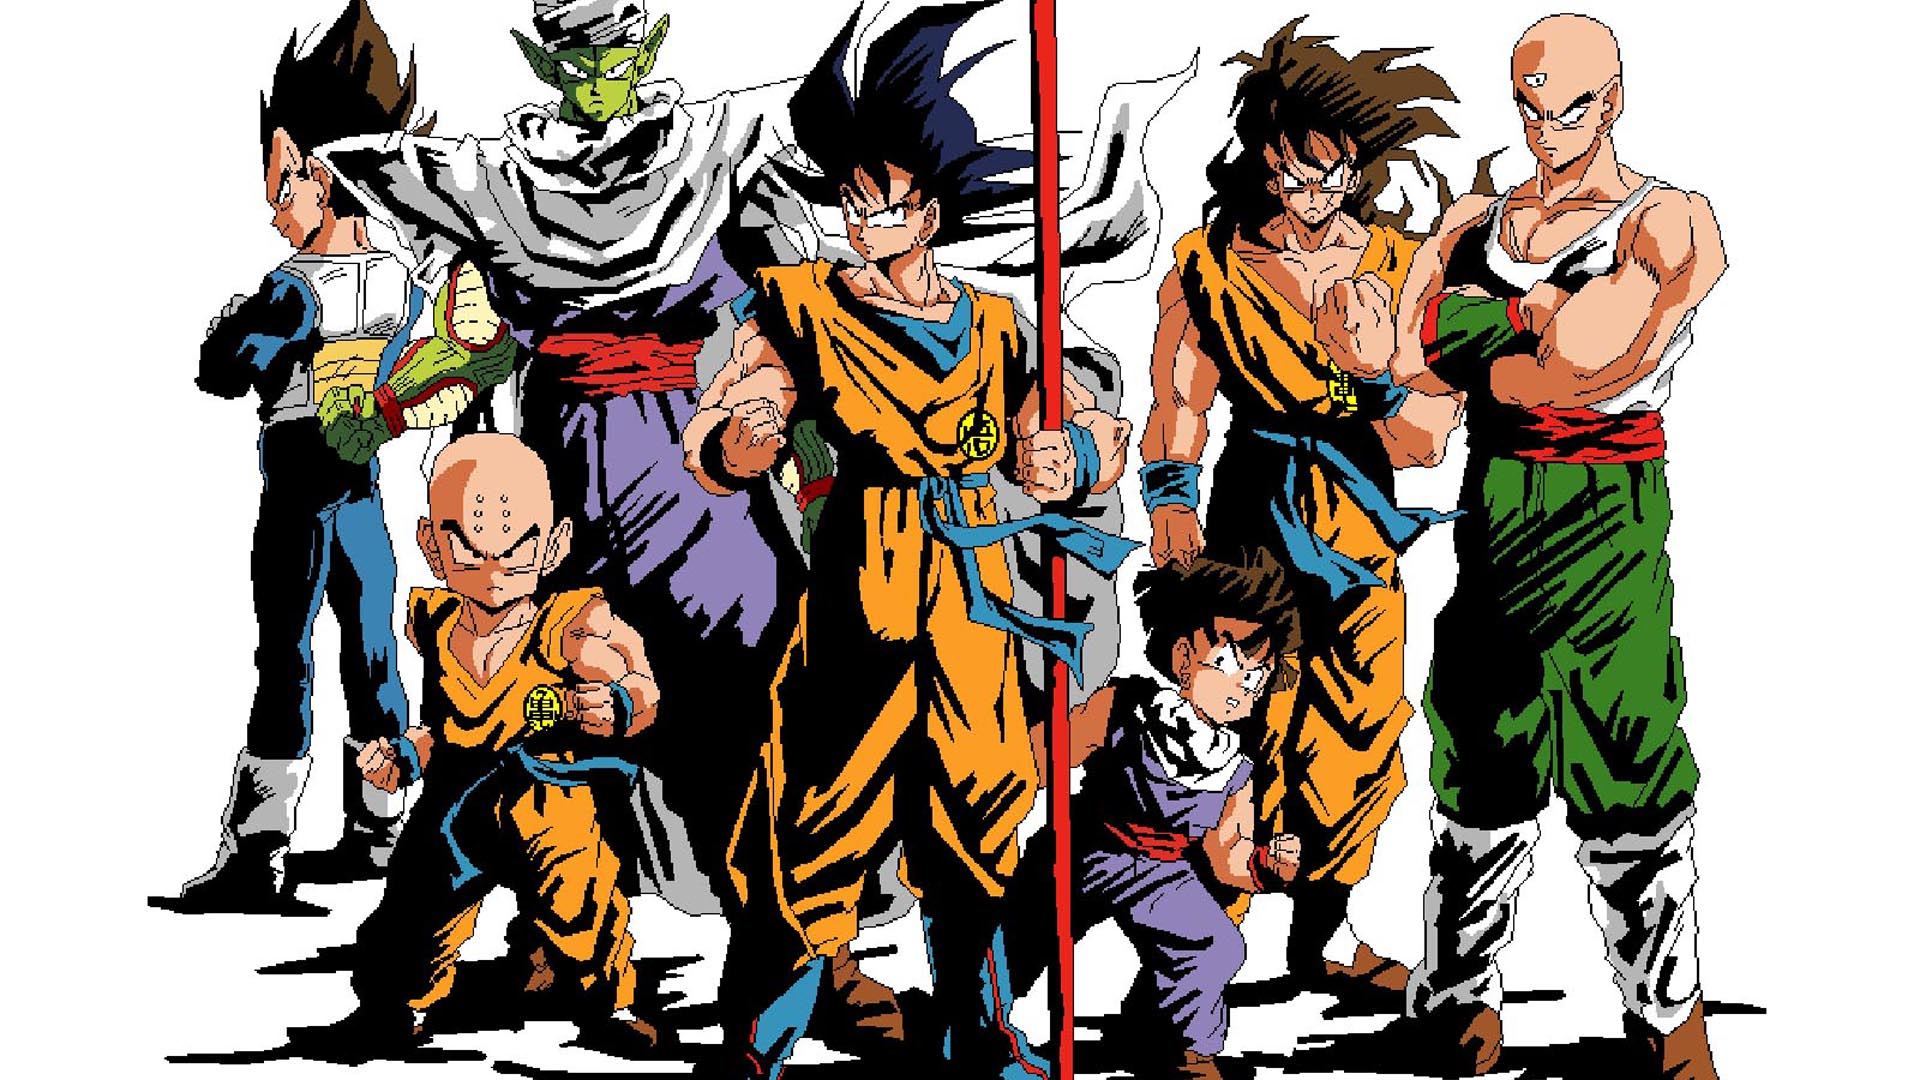 dragonball-1920%C3%971080-wallpaper-wp3605216